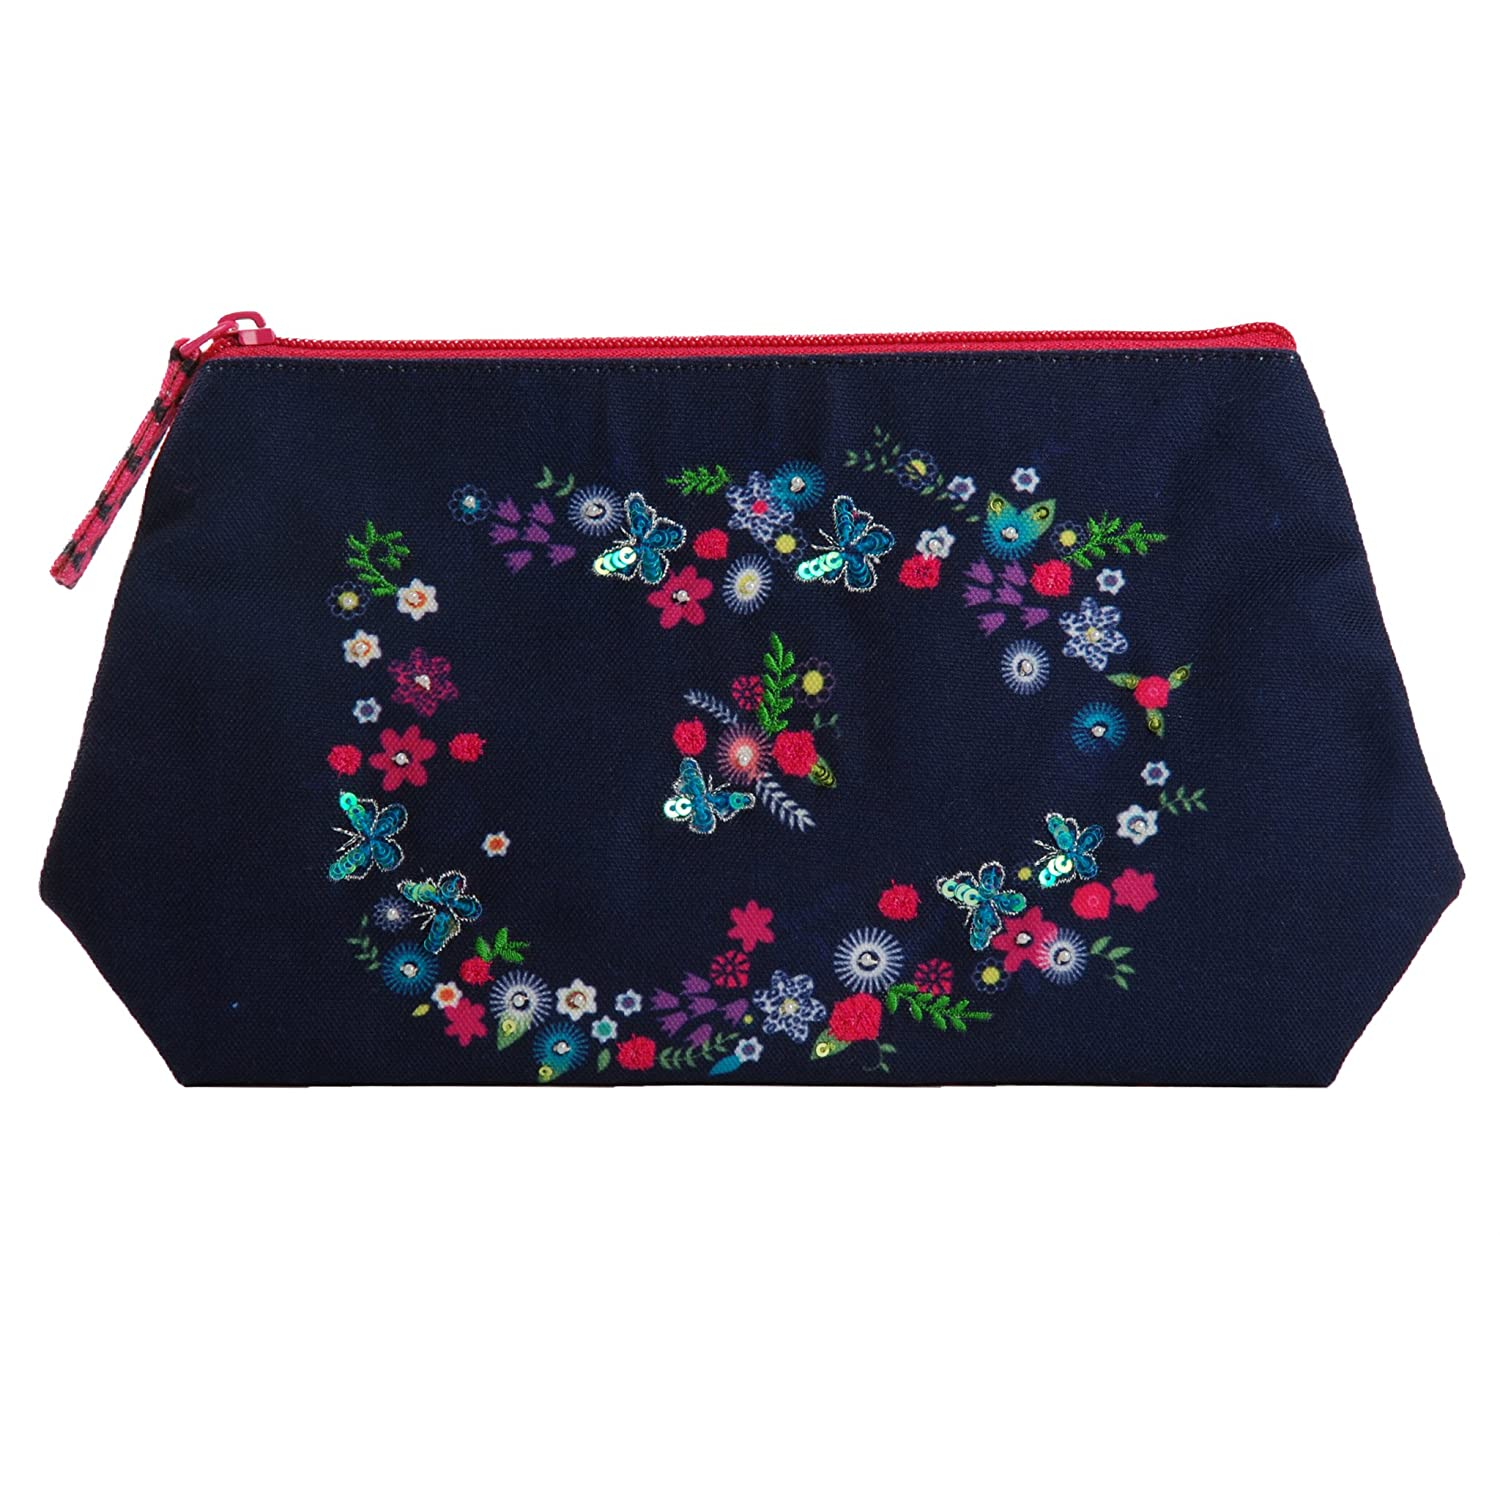 Pinaken Women and Girls Canvas All Purpose Cosmetic Pouch Butterfly Bloom, Canvas